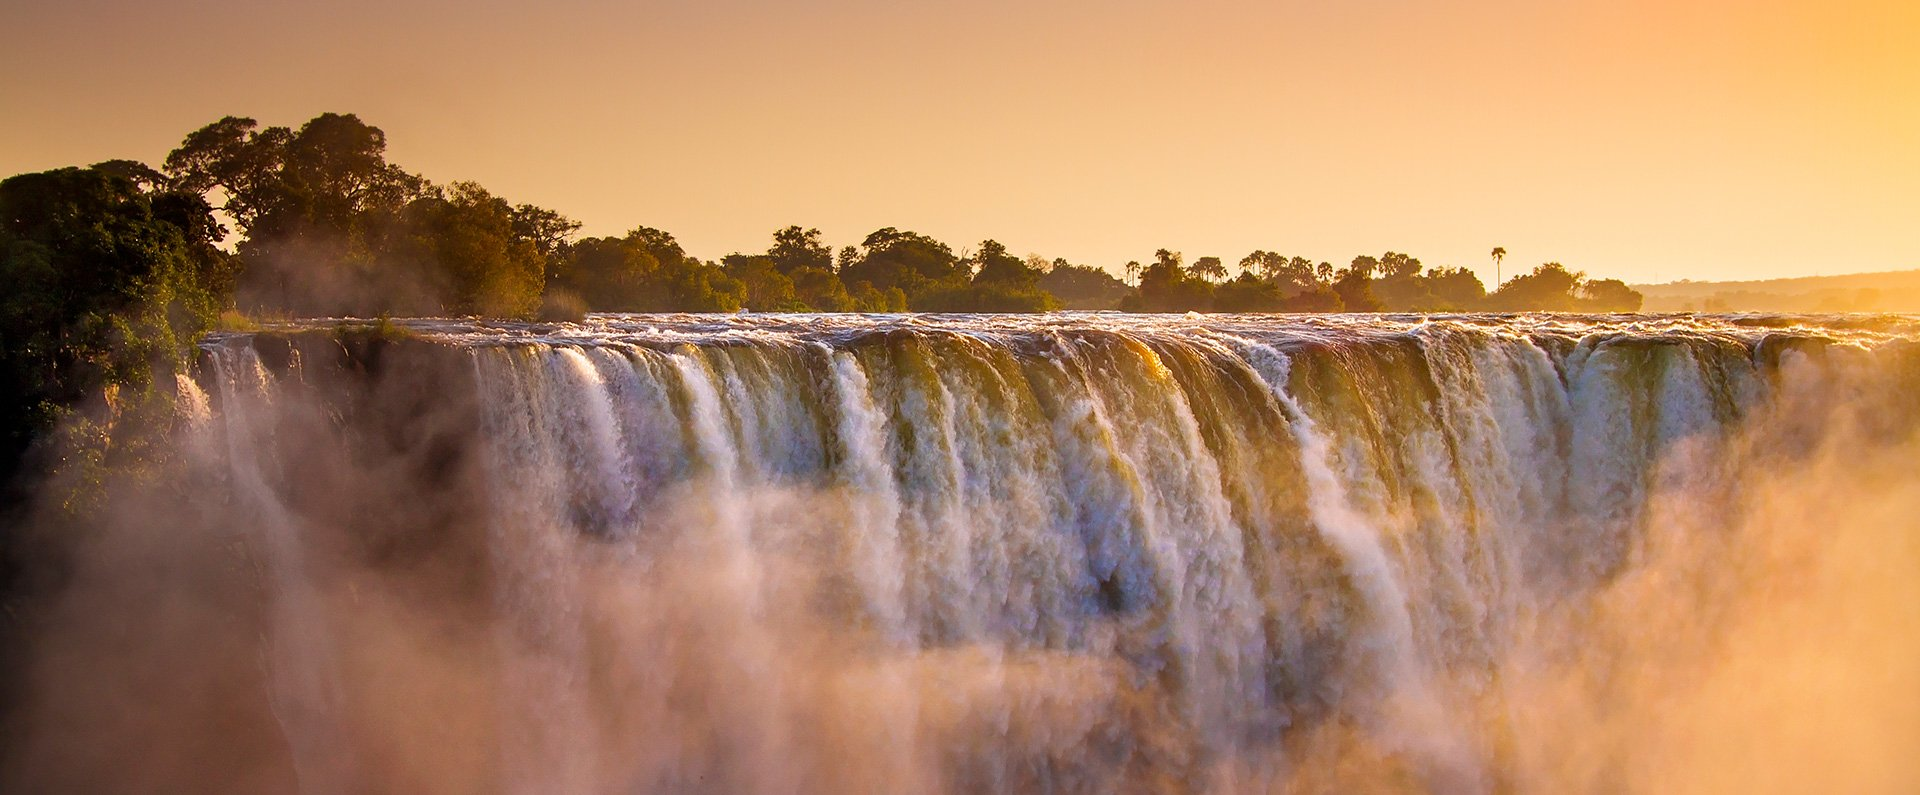 Victoria-Falls-Hotel-Accommodation-Falls-Sunset